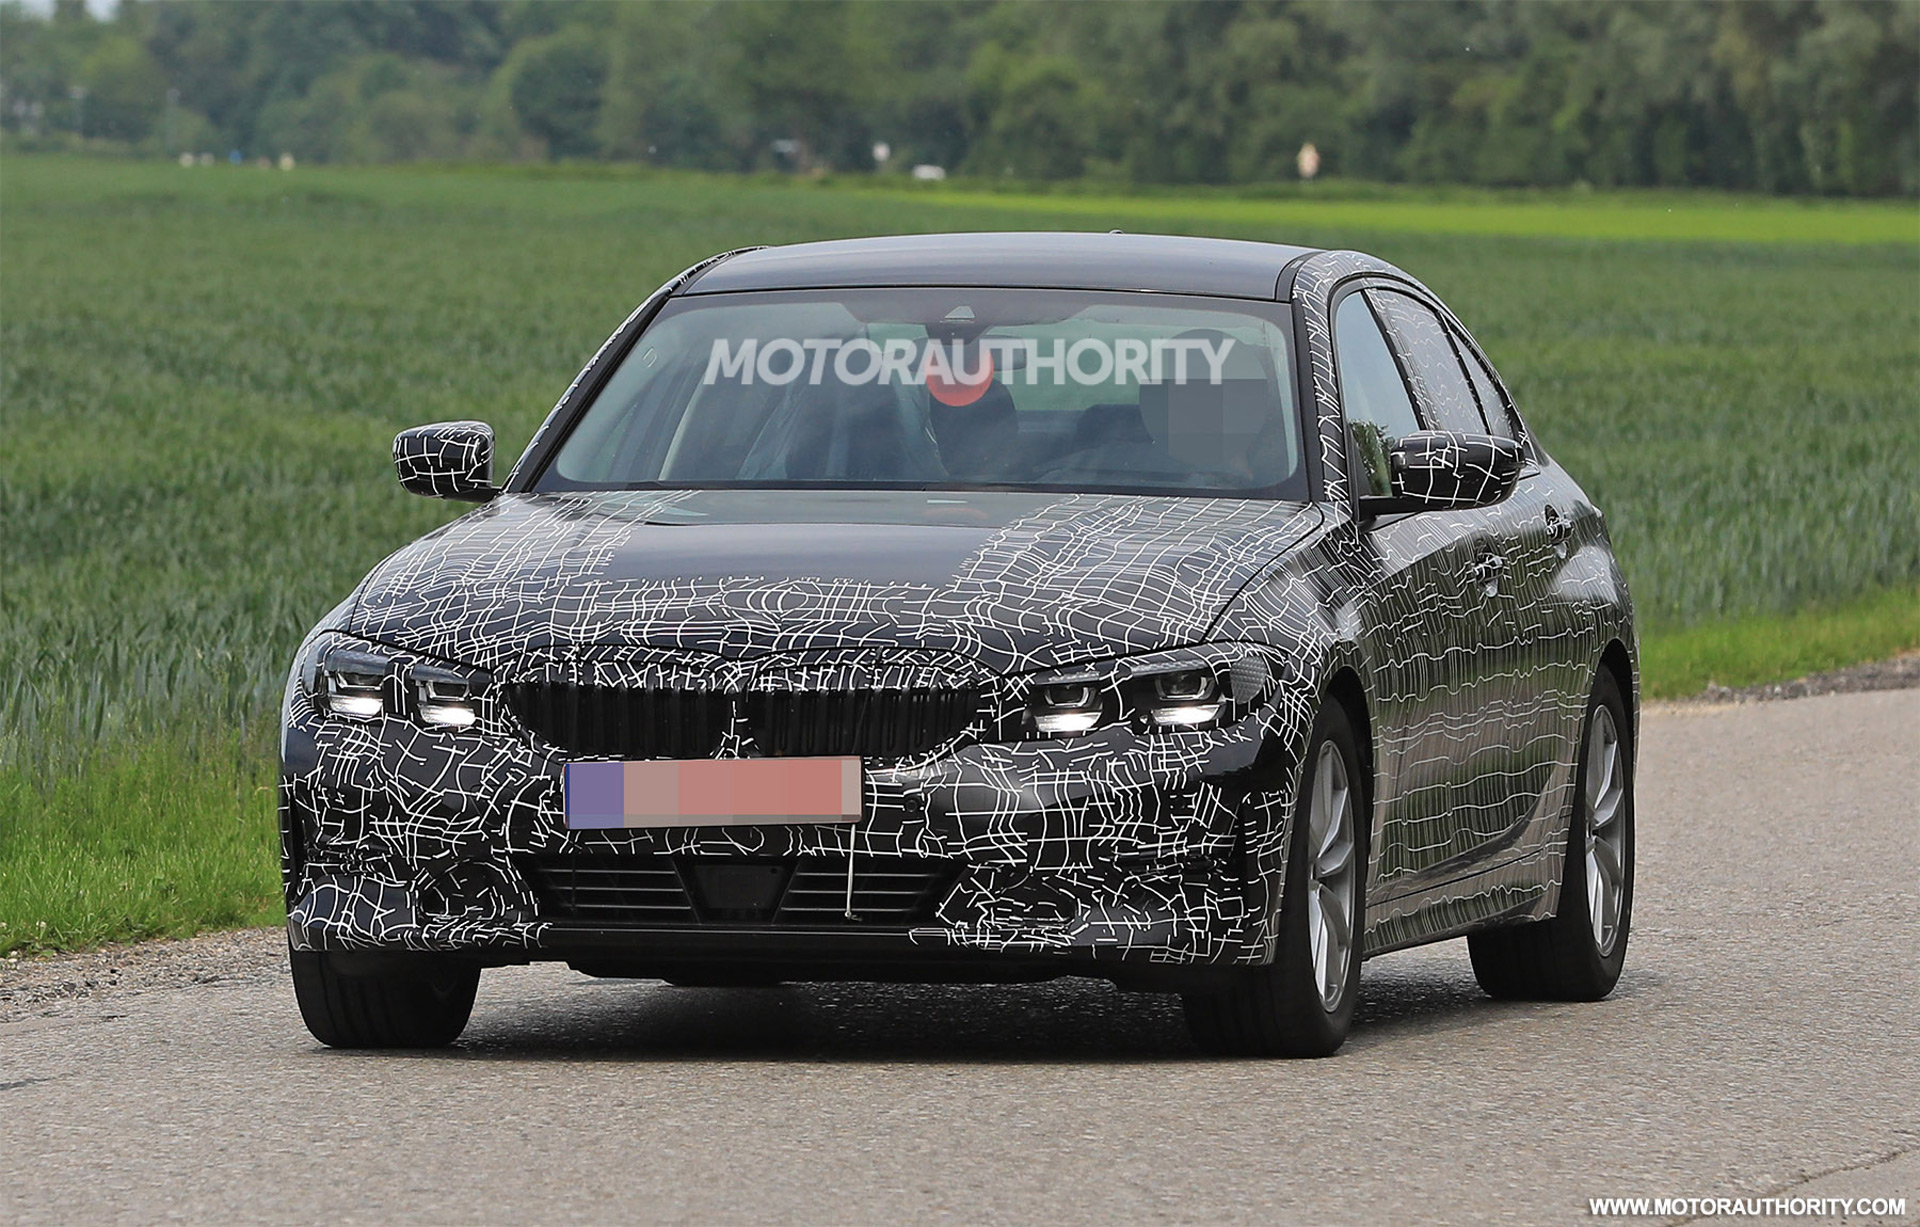 42 New 2020 Spy Shots BMW 3 Series Engine